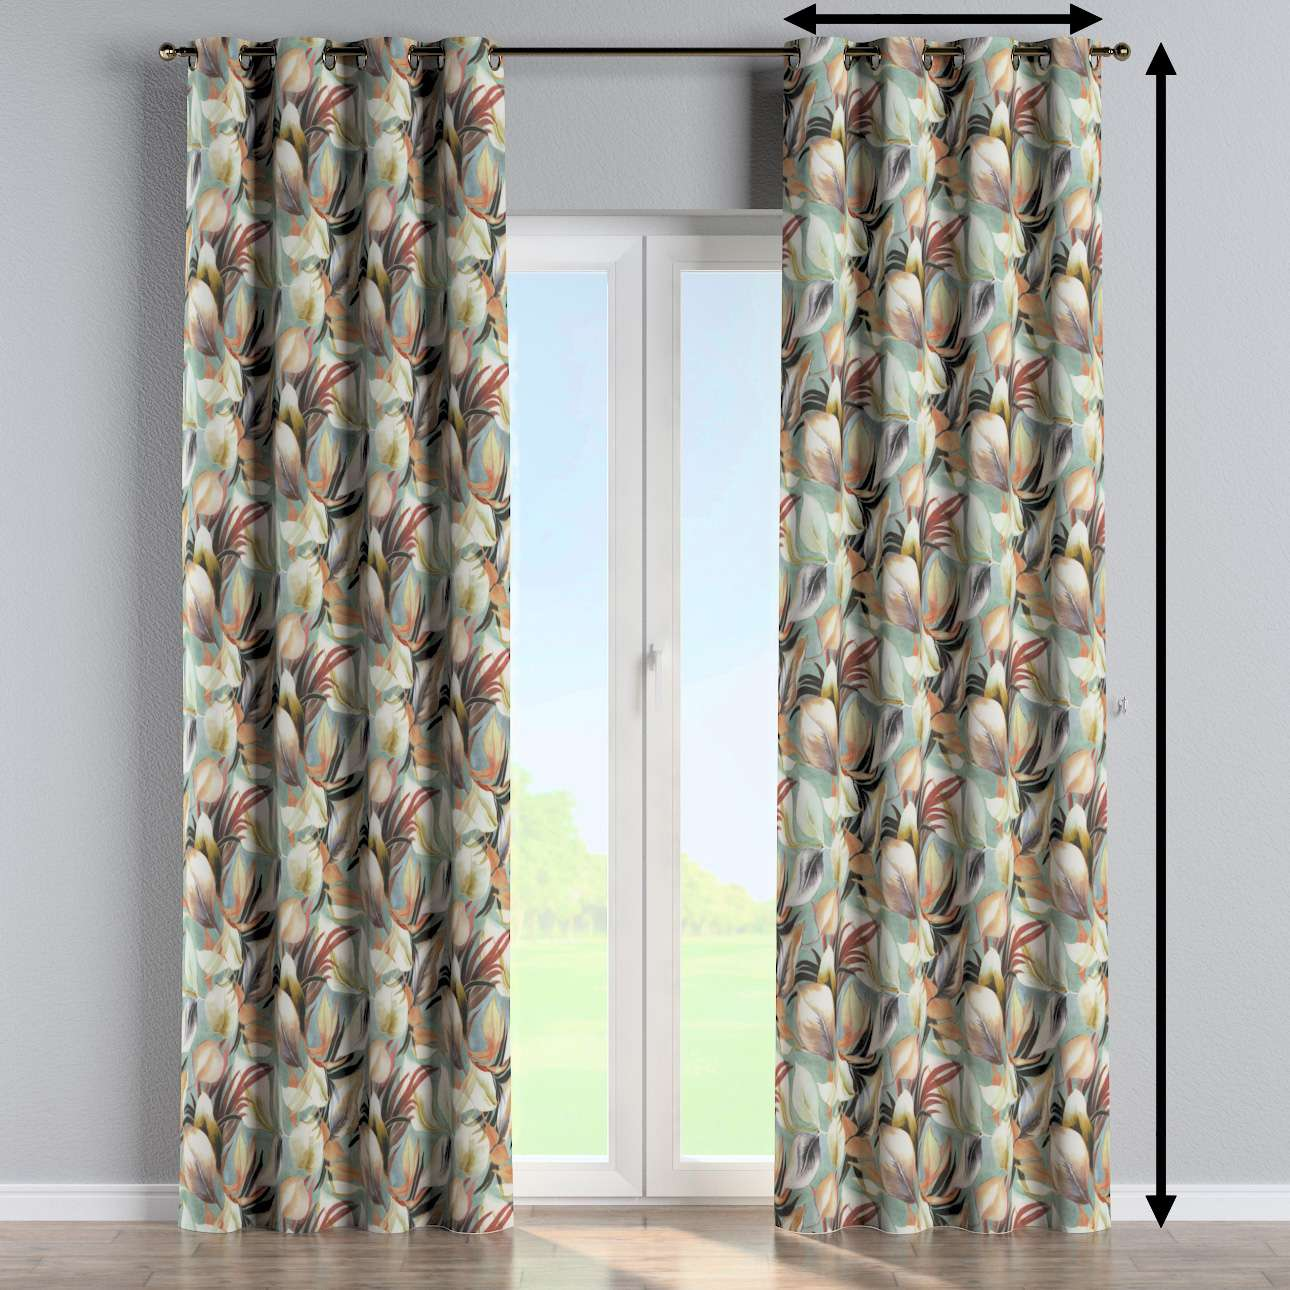 Eyelet curtain in collection Abigail, fabric: 143-61